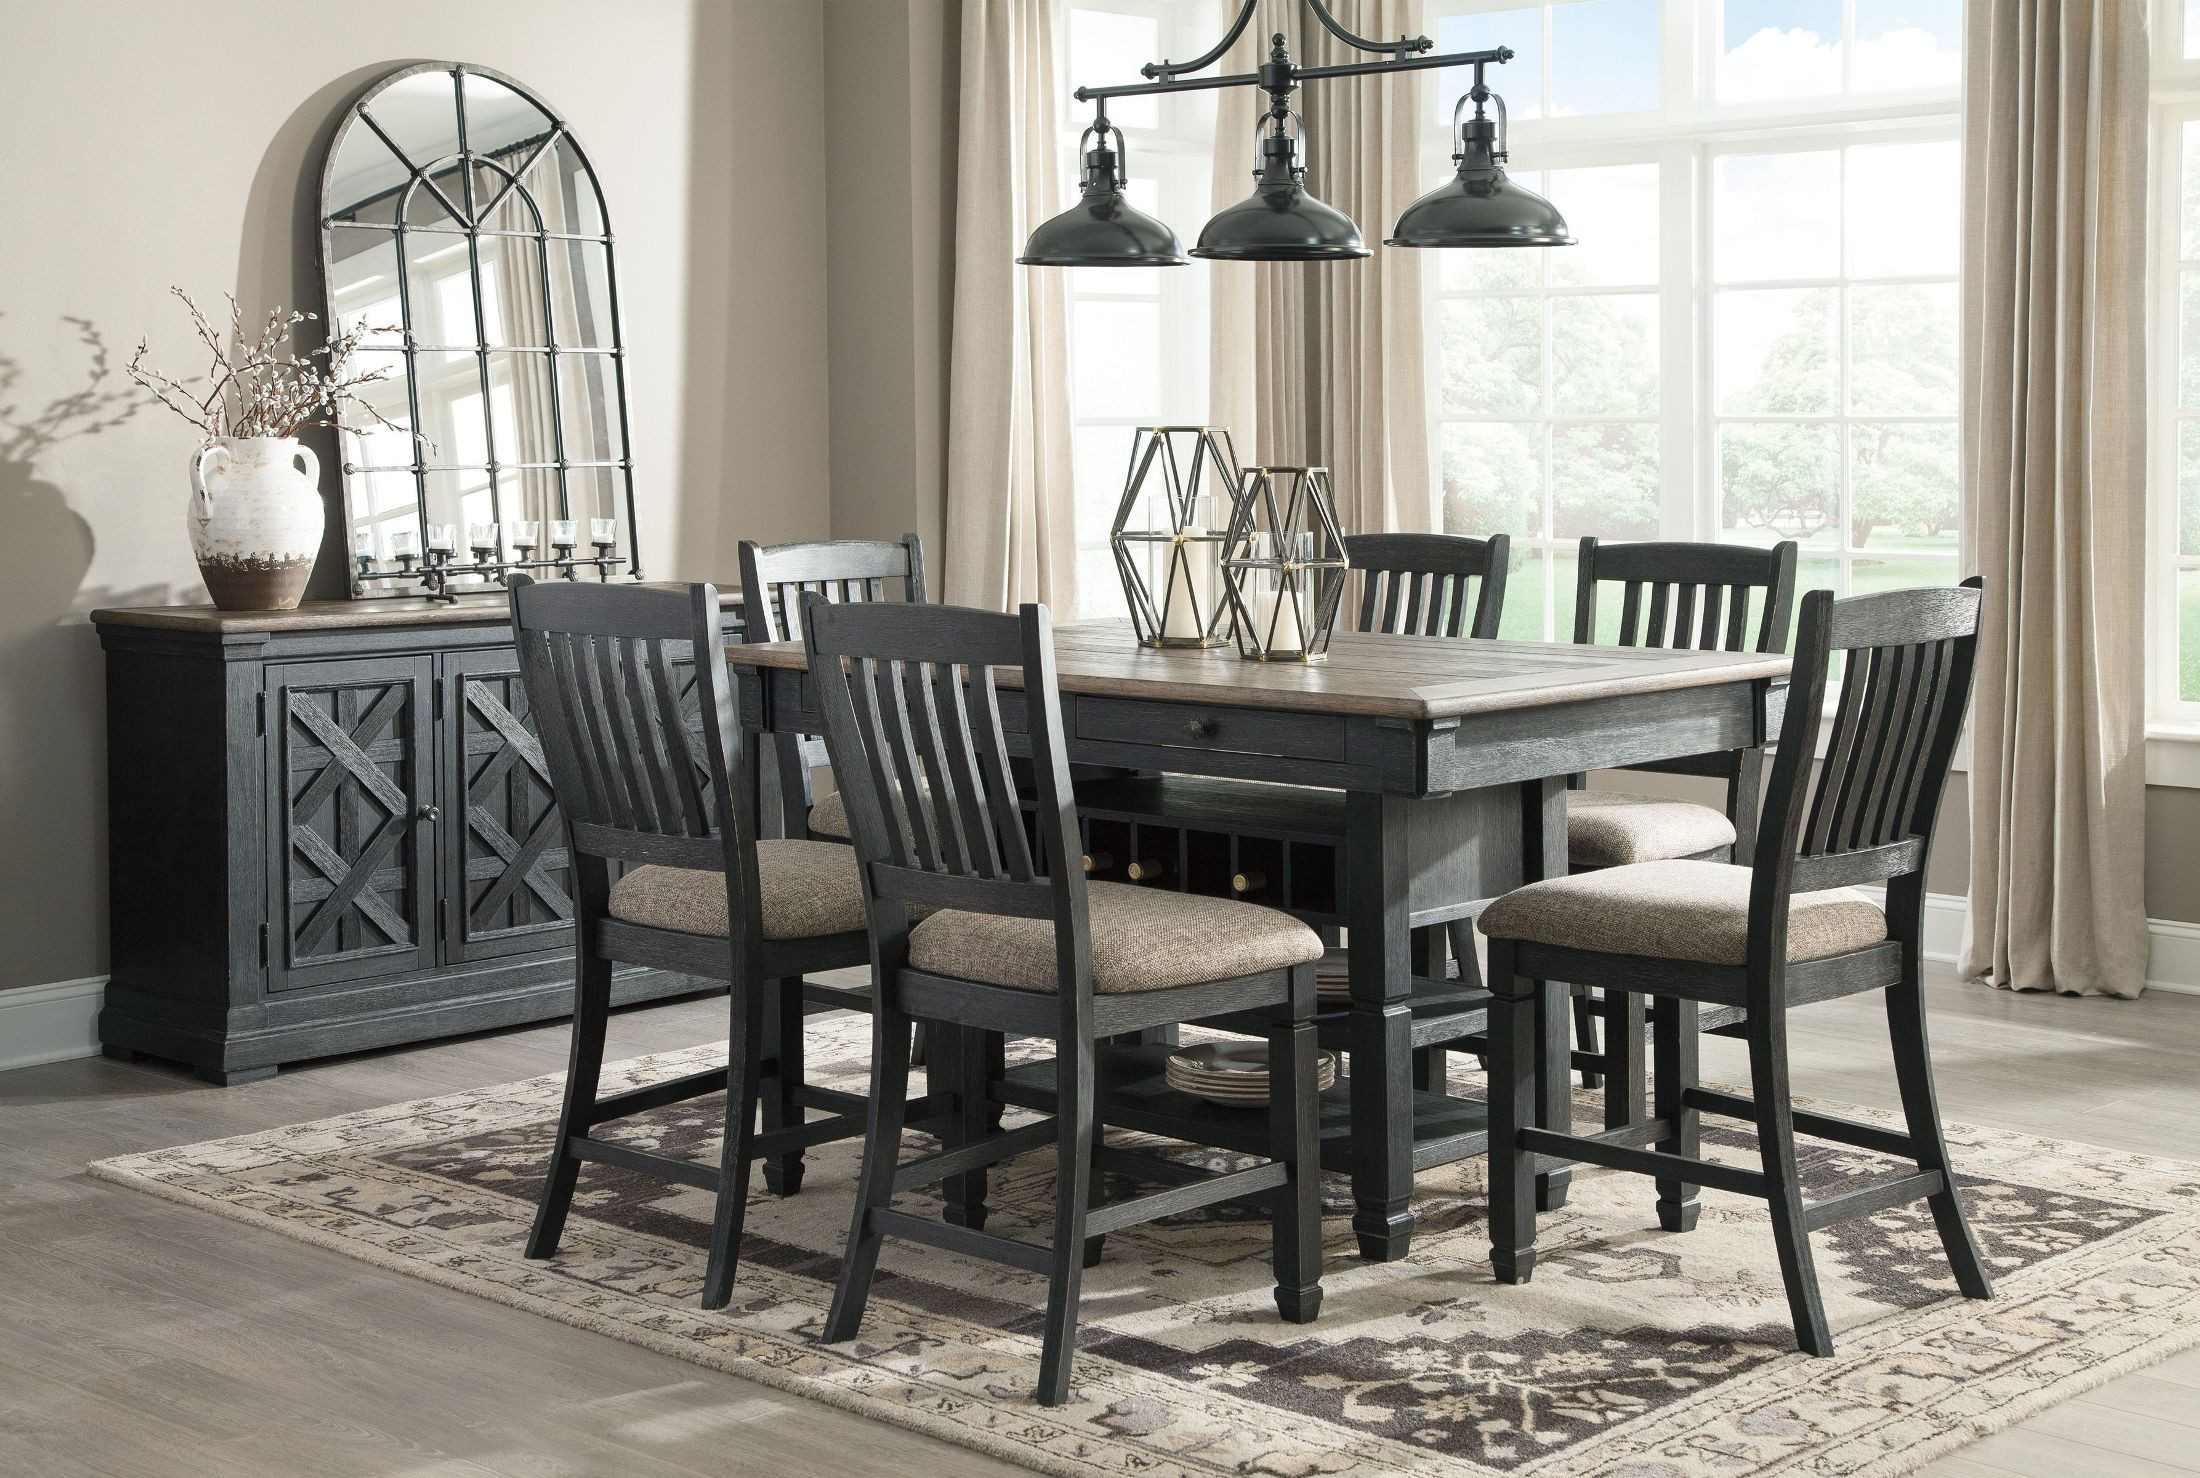 of legs buffet alluring size top black a long full the looks chair chairs and soft dining formal beside metal set an table with tablewares room rectangular glass